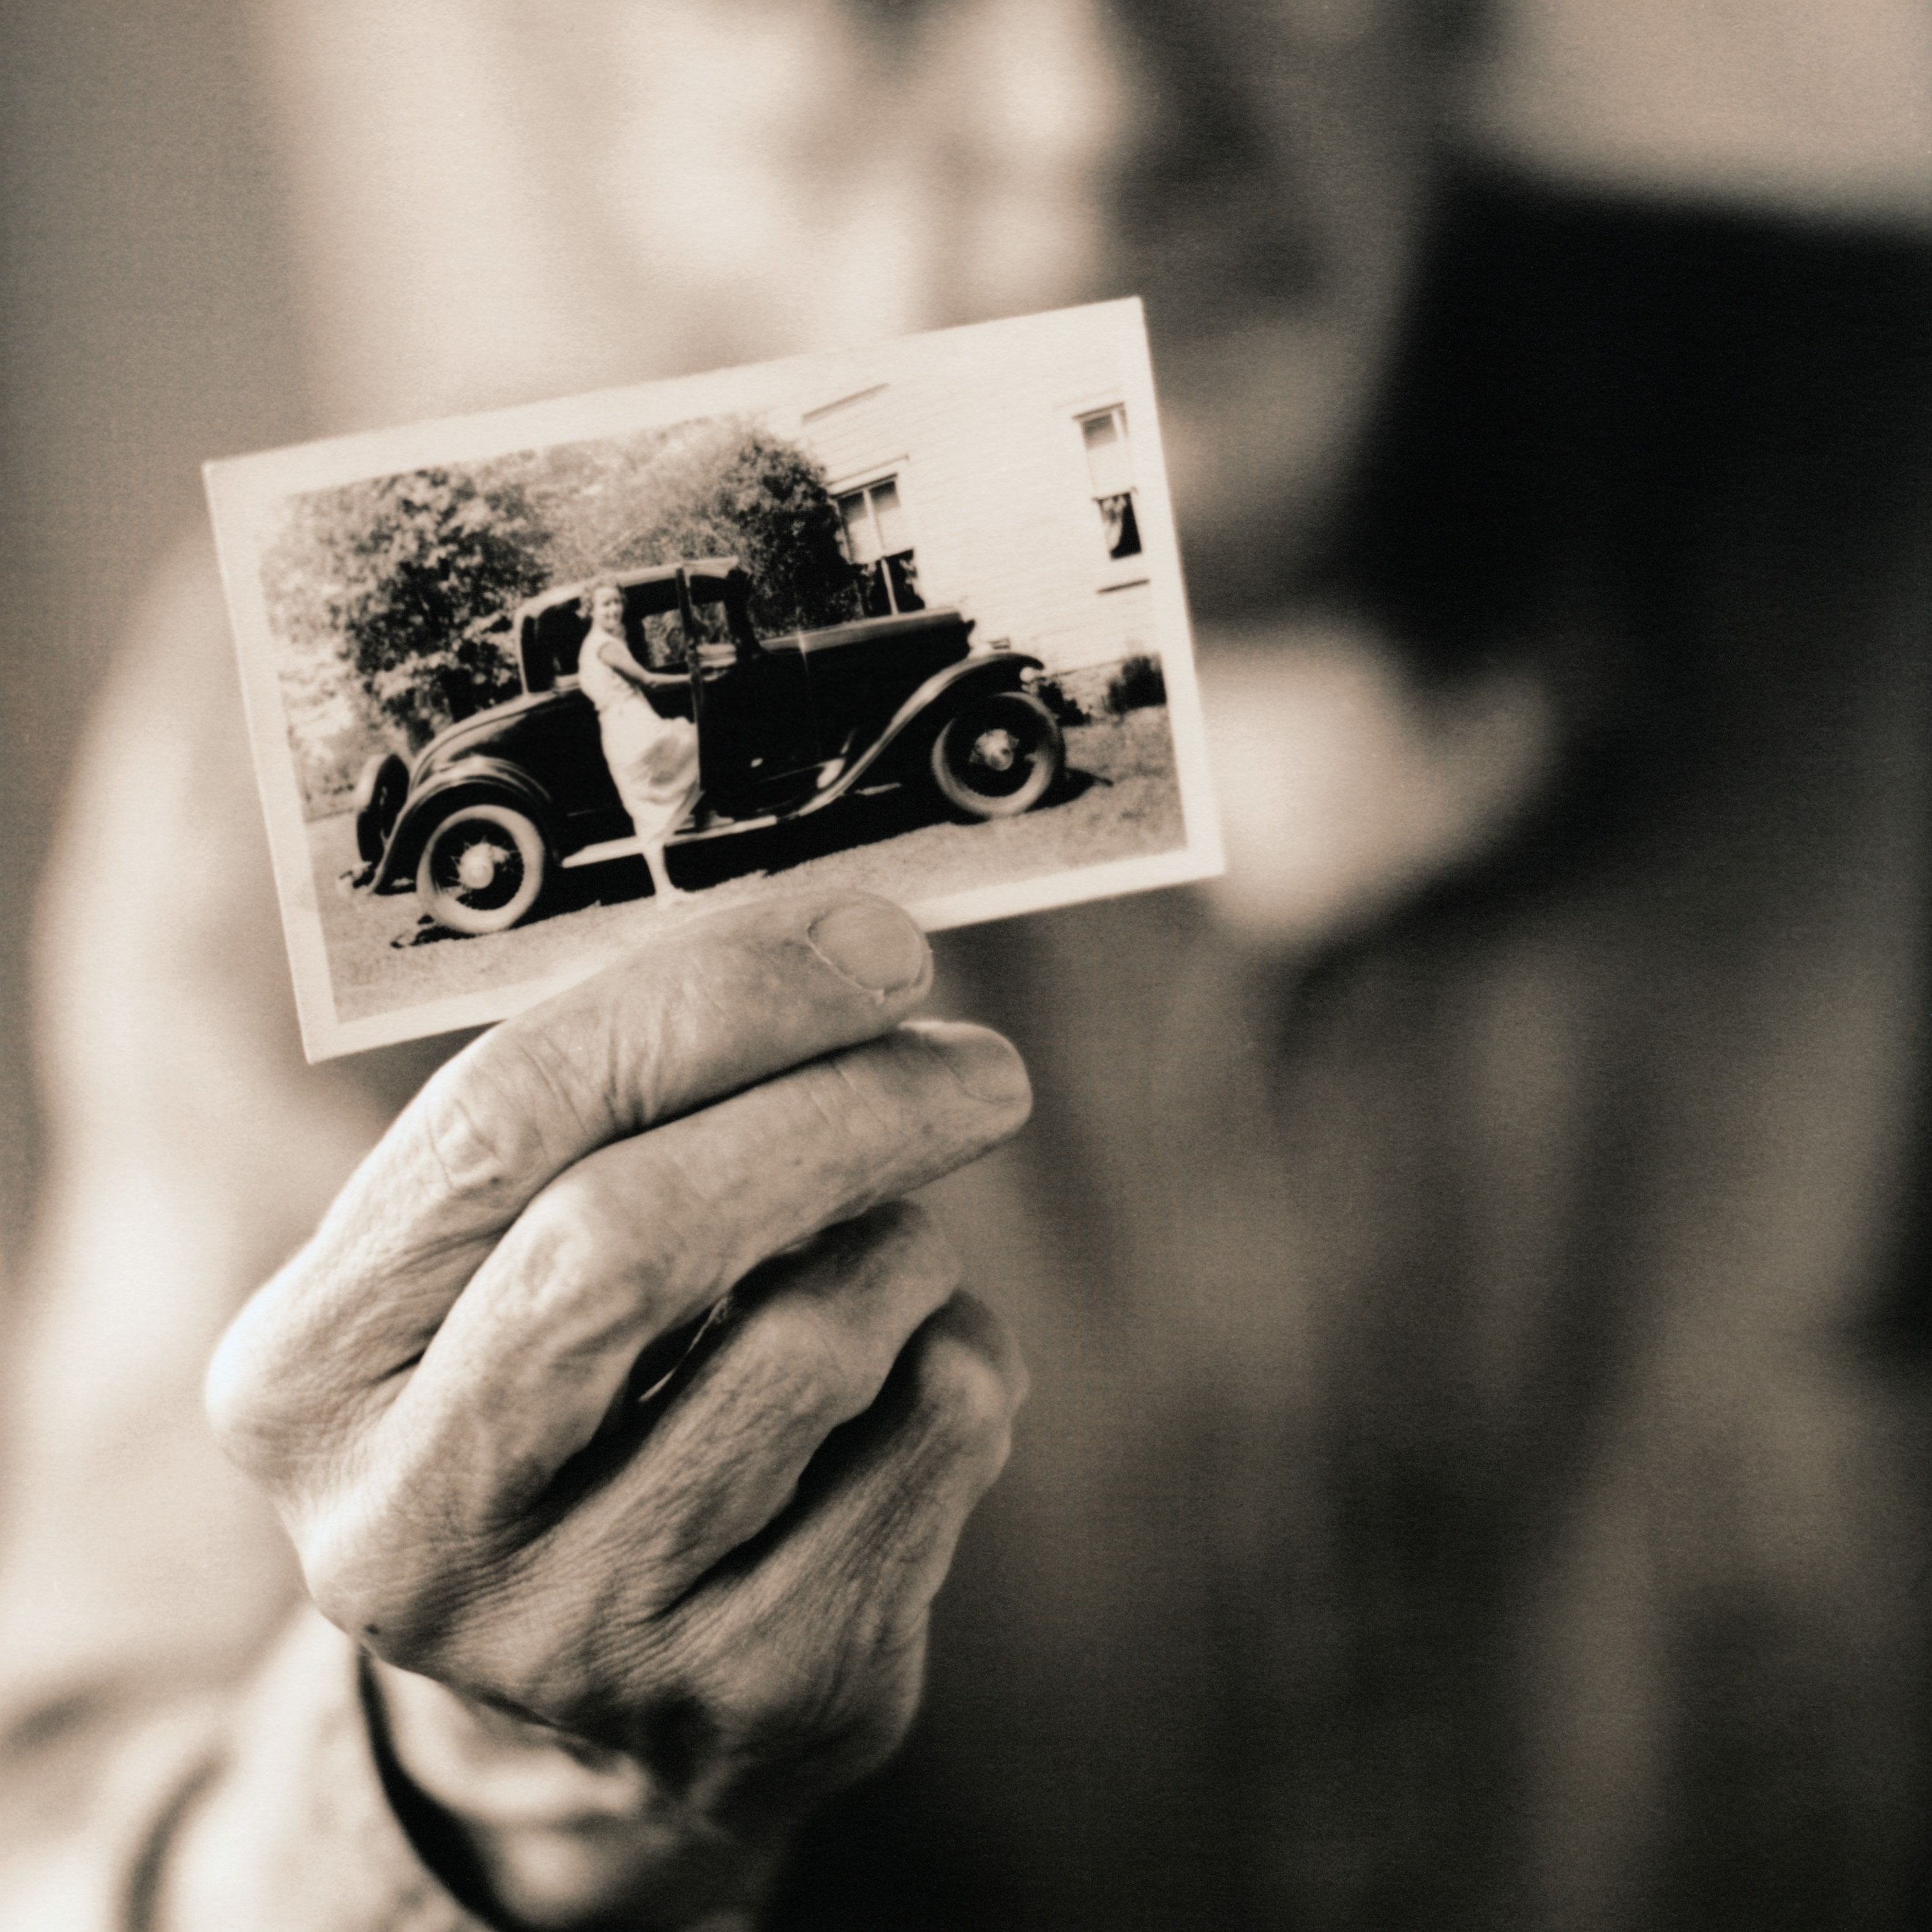 Man Holding a Vintage Photograph